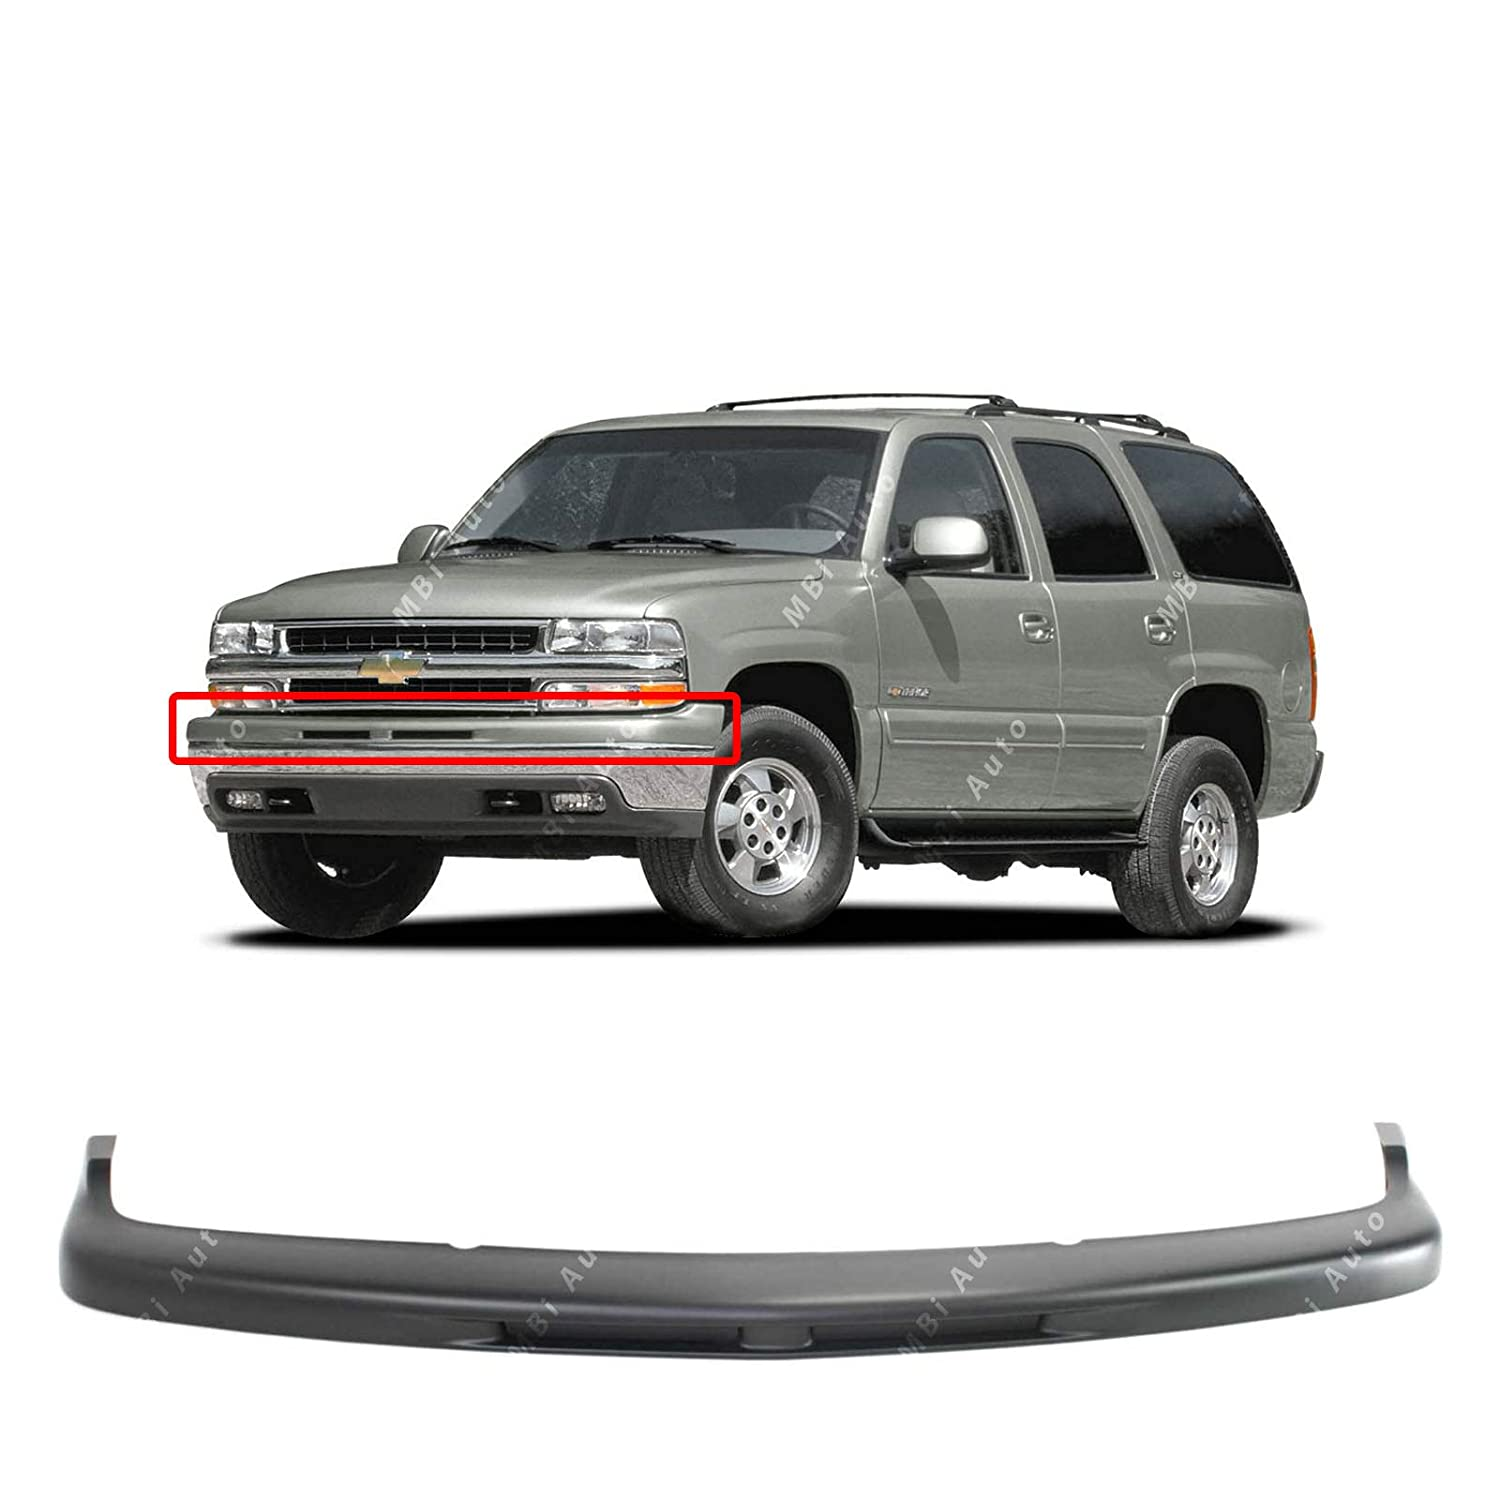 Front Upper Bumper Top Cover Pad for 1999-2002 Chevy Silverado /& 2000-2006 Chevy Tahoe Primered MBI AUTO GM1051107 Suburban 00-06